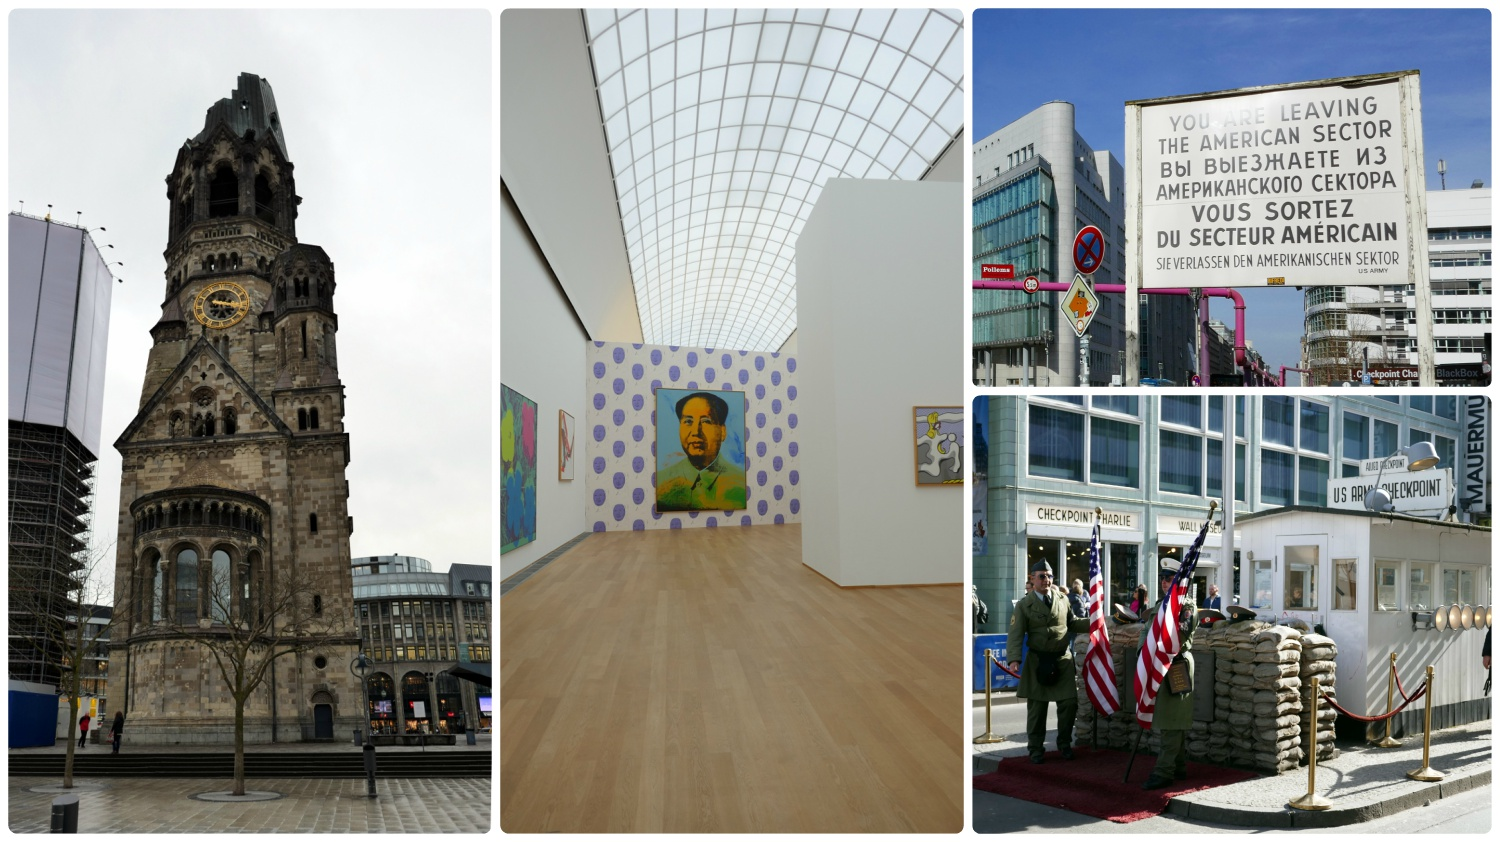 Berlin, Germany. Clockwise (from the top left): Kaiser Wilhelm Gedächtnis Kirche, exhibition at Hamburger Bahnhof, CheckPoint Charlie Sign, Check Point Charlie.